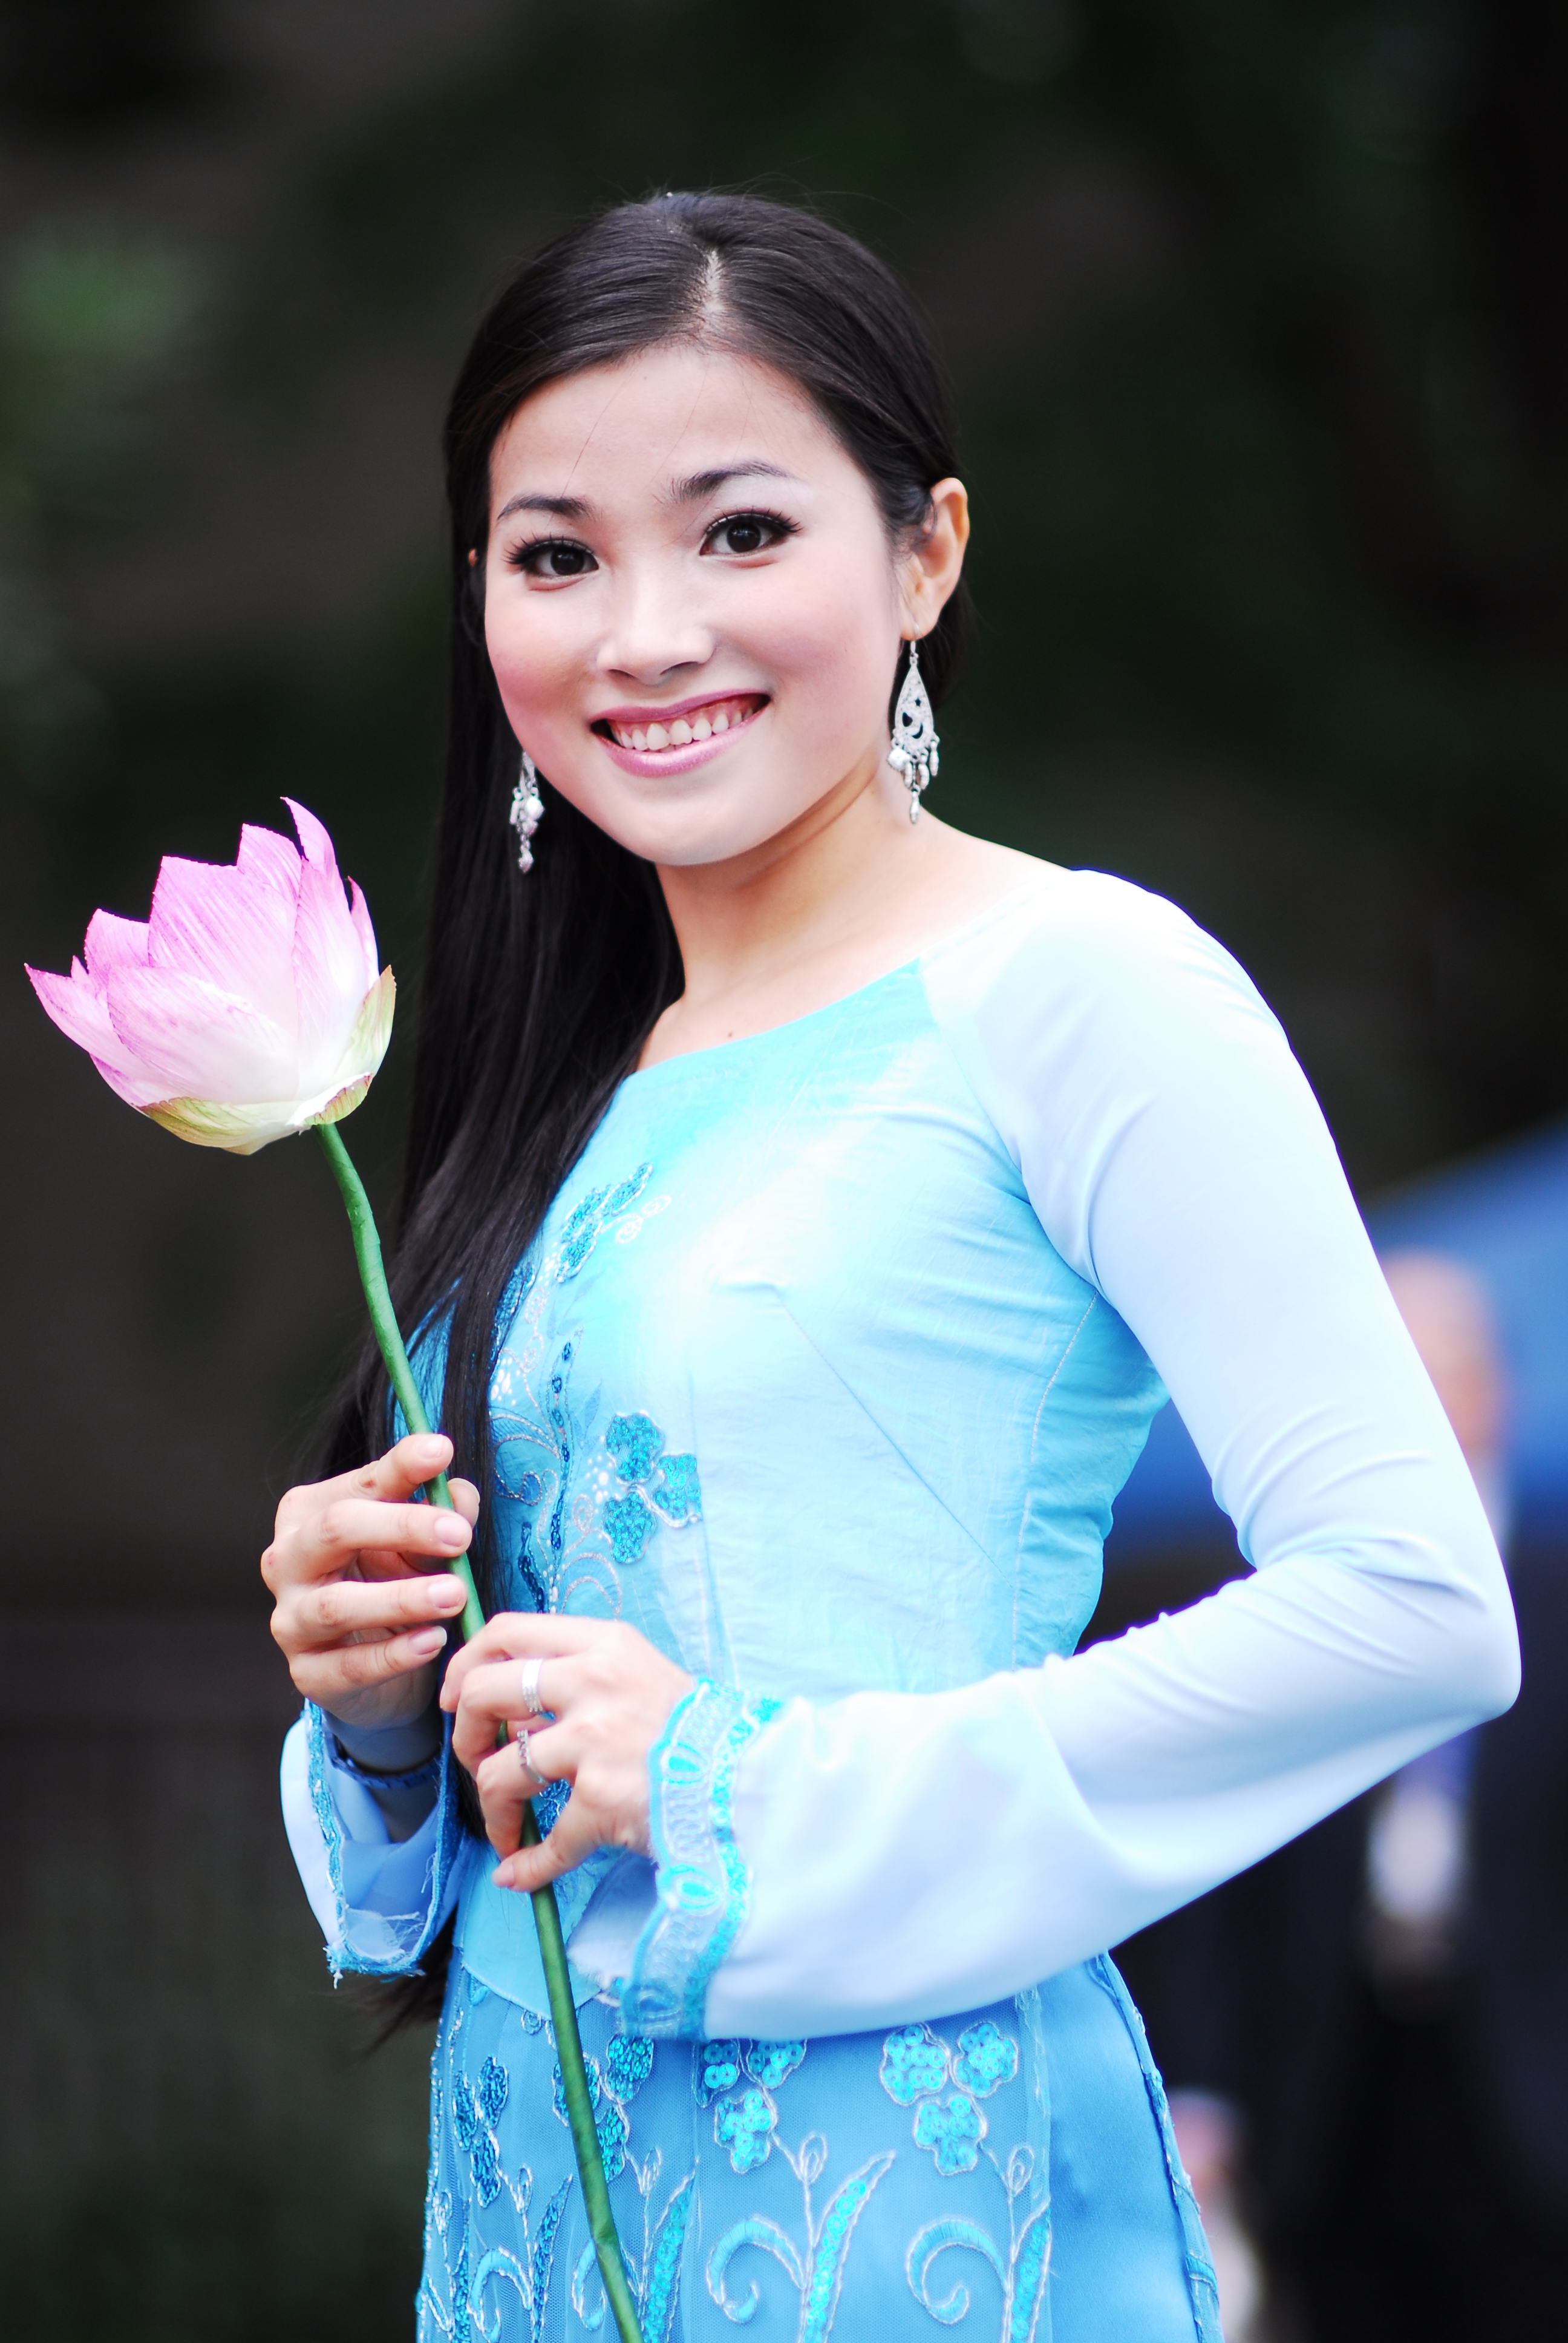 File:A Vietnamese young lady in ao dai.jpg - Wikimedia Commons